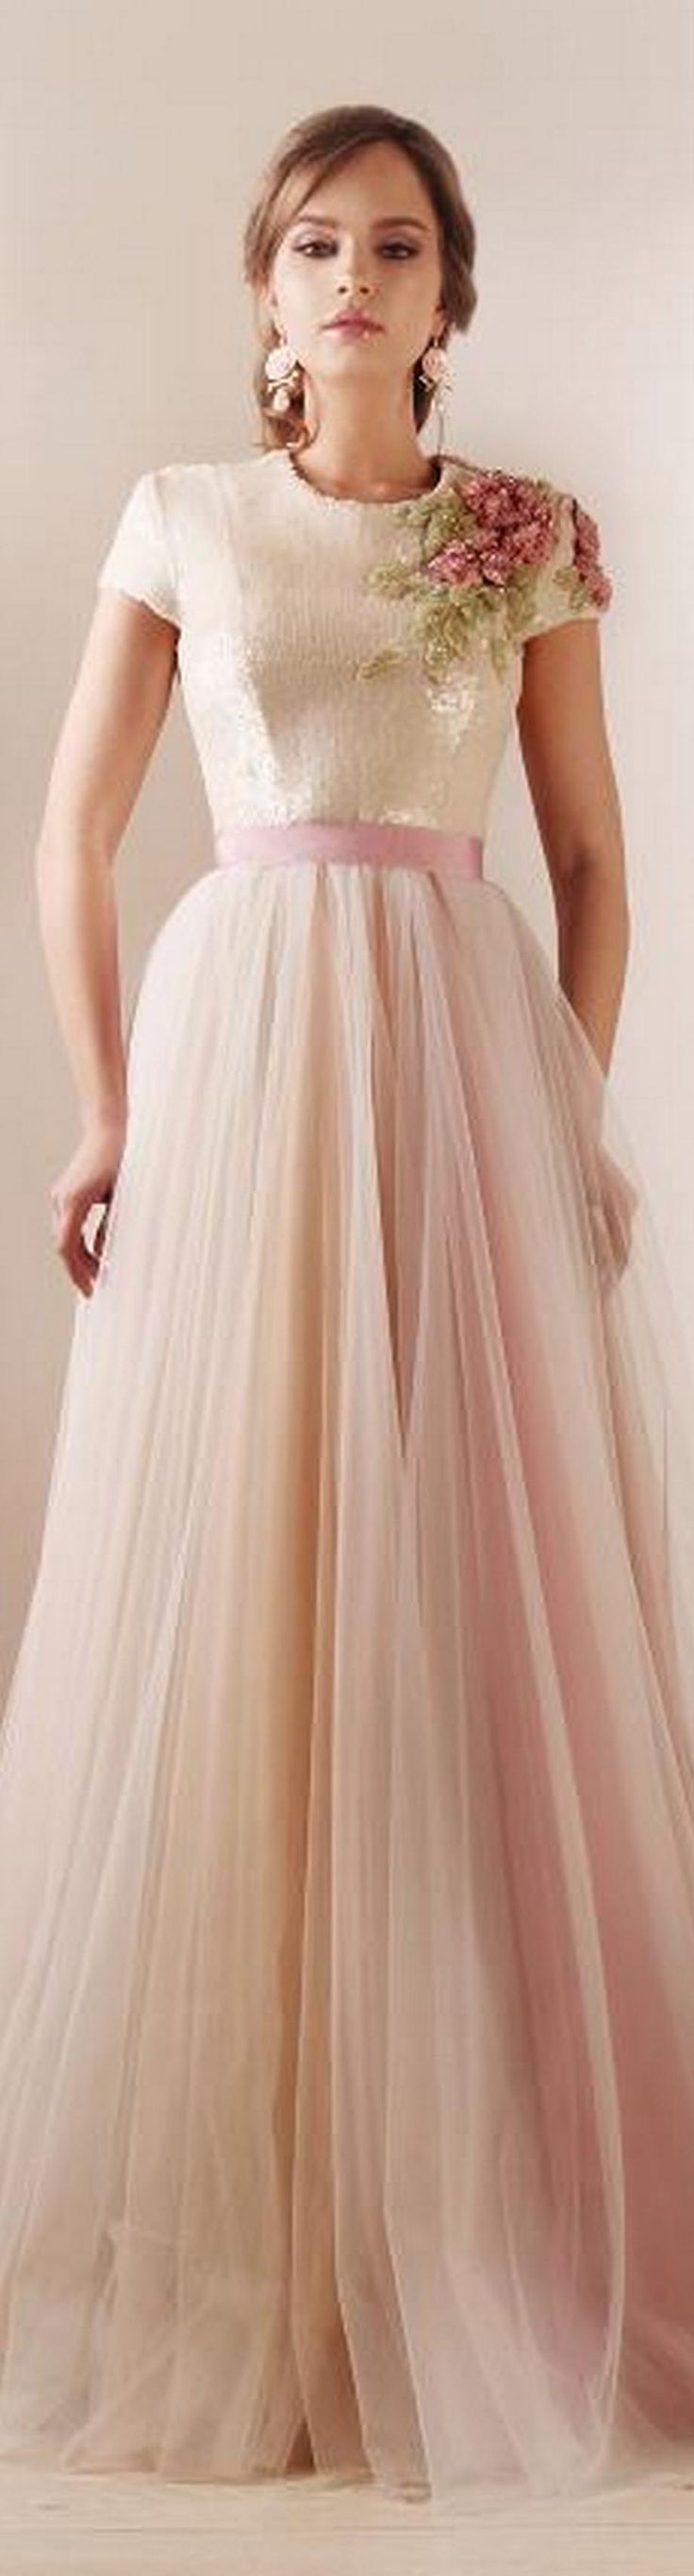 I think this would make a cute bridemaid dress <3 Rami Kadi Dress #josephine#vogel